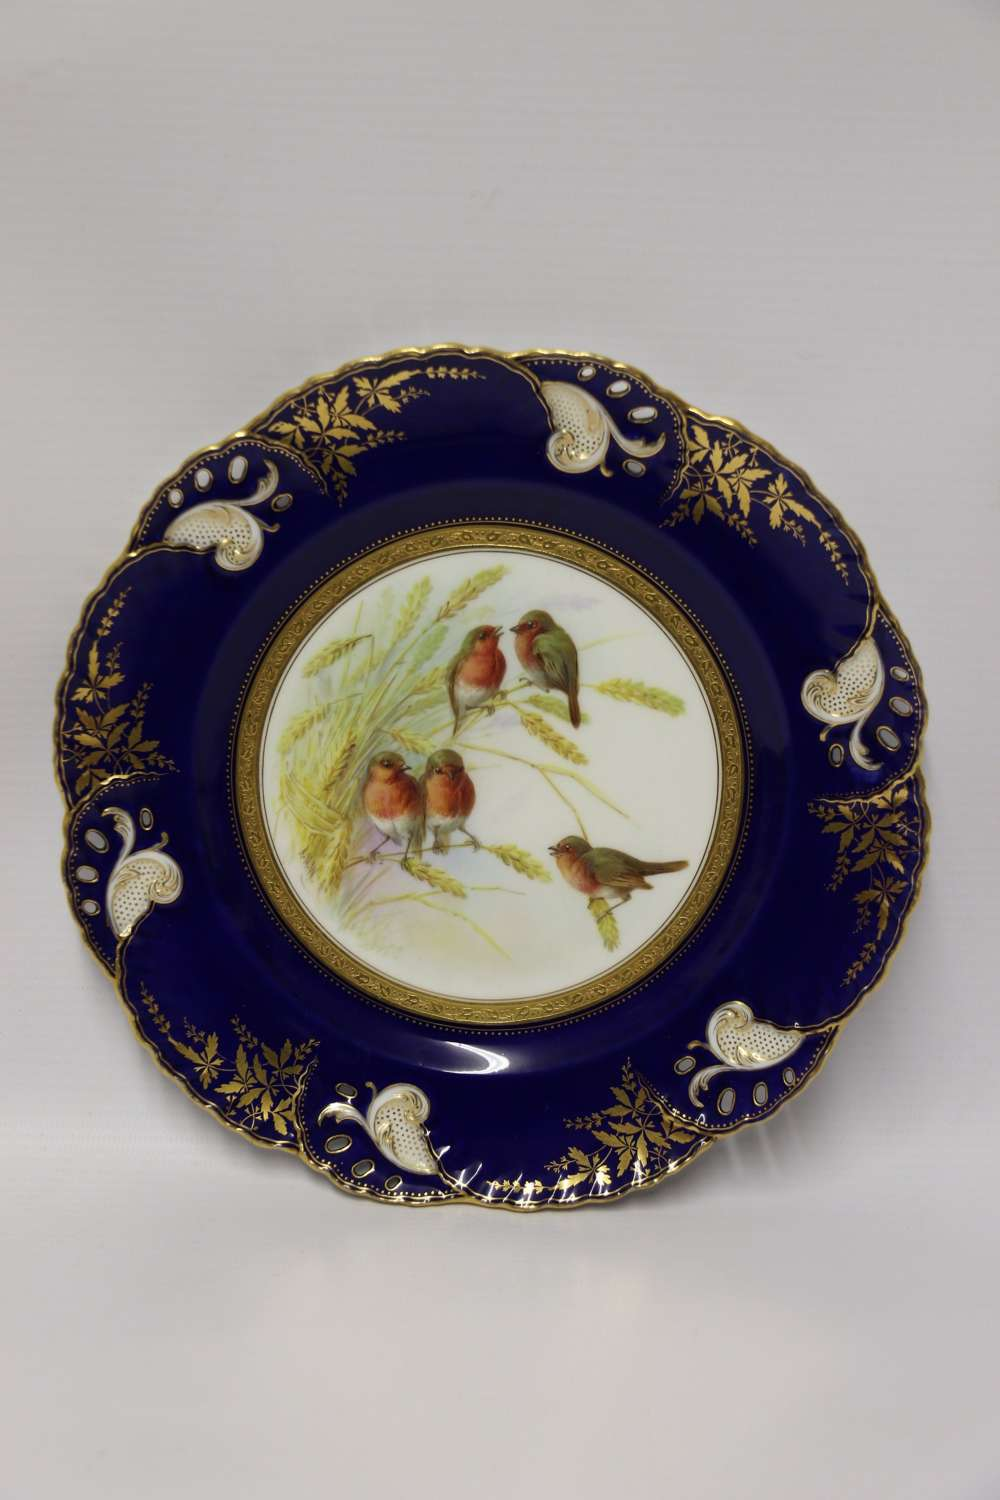 A Charming Victorian Minton's Porcelain Cabinet Plate Hand Painted With Robins